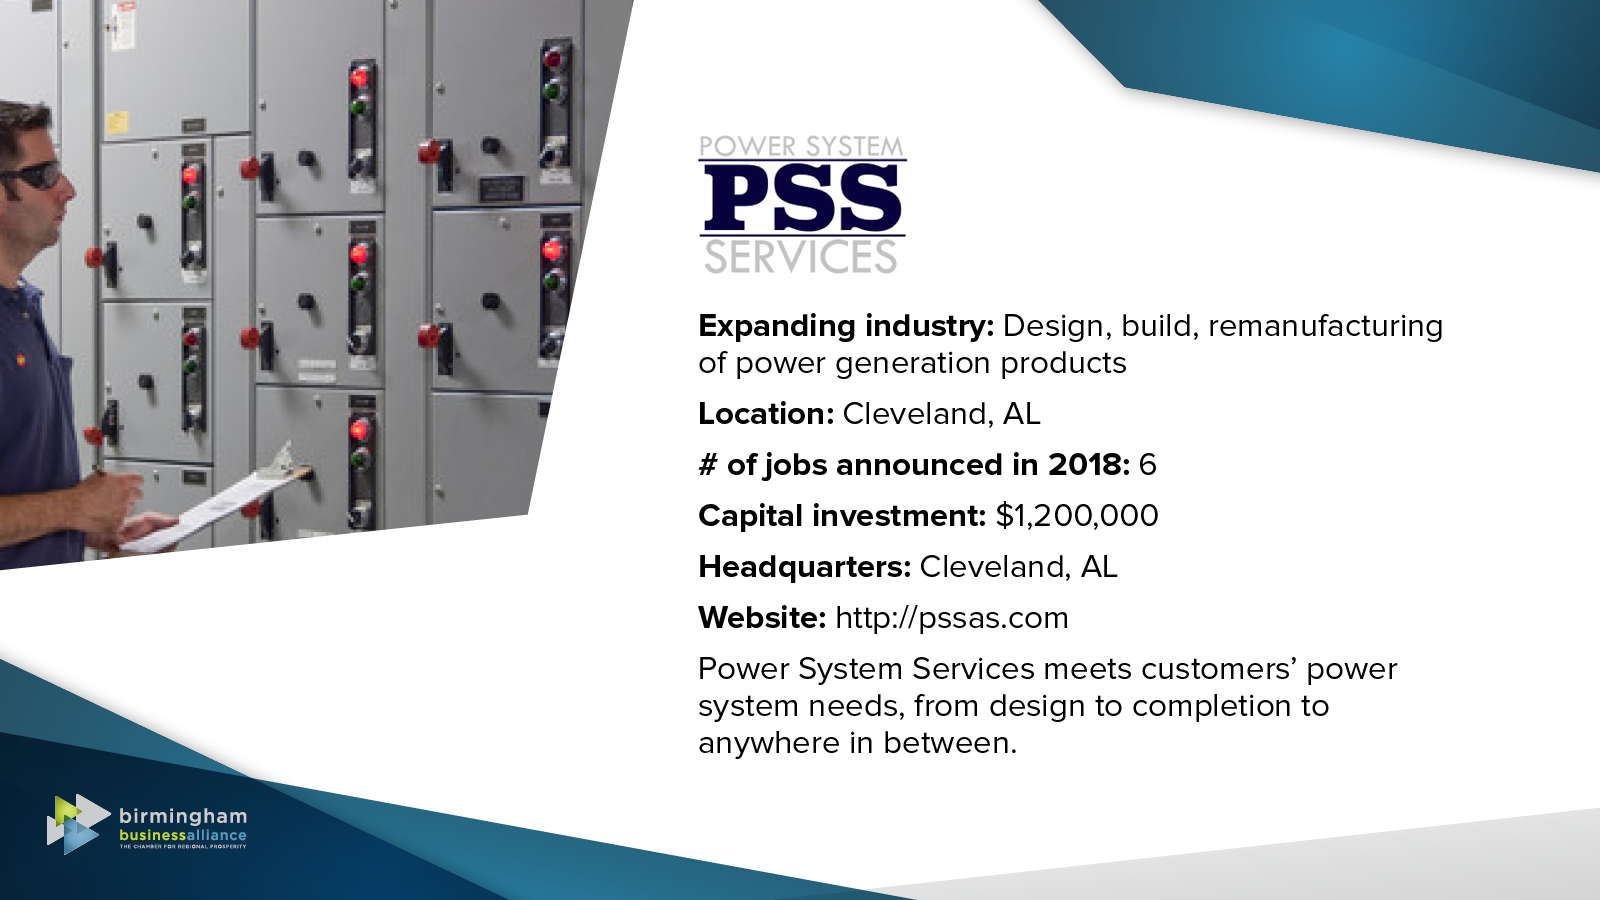 44) Power System Services